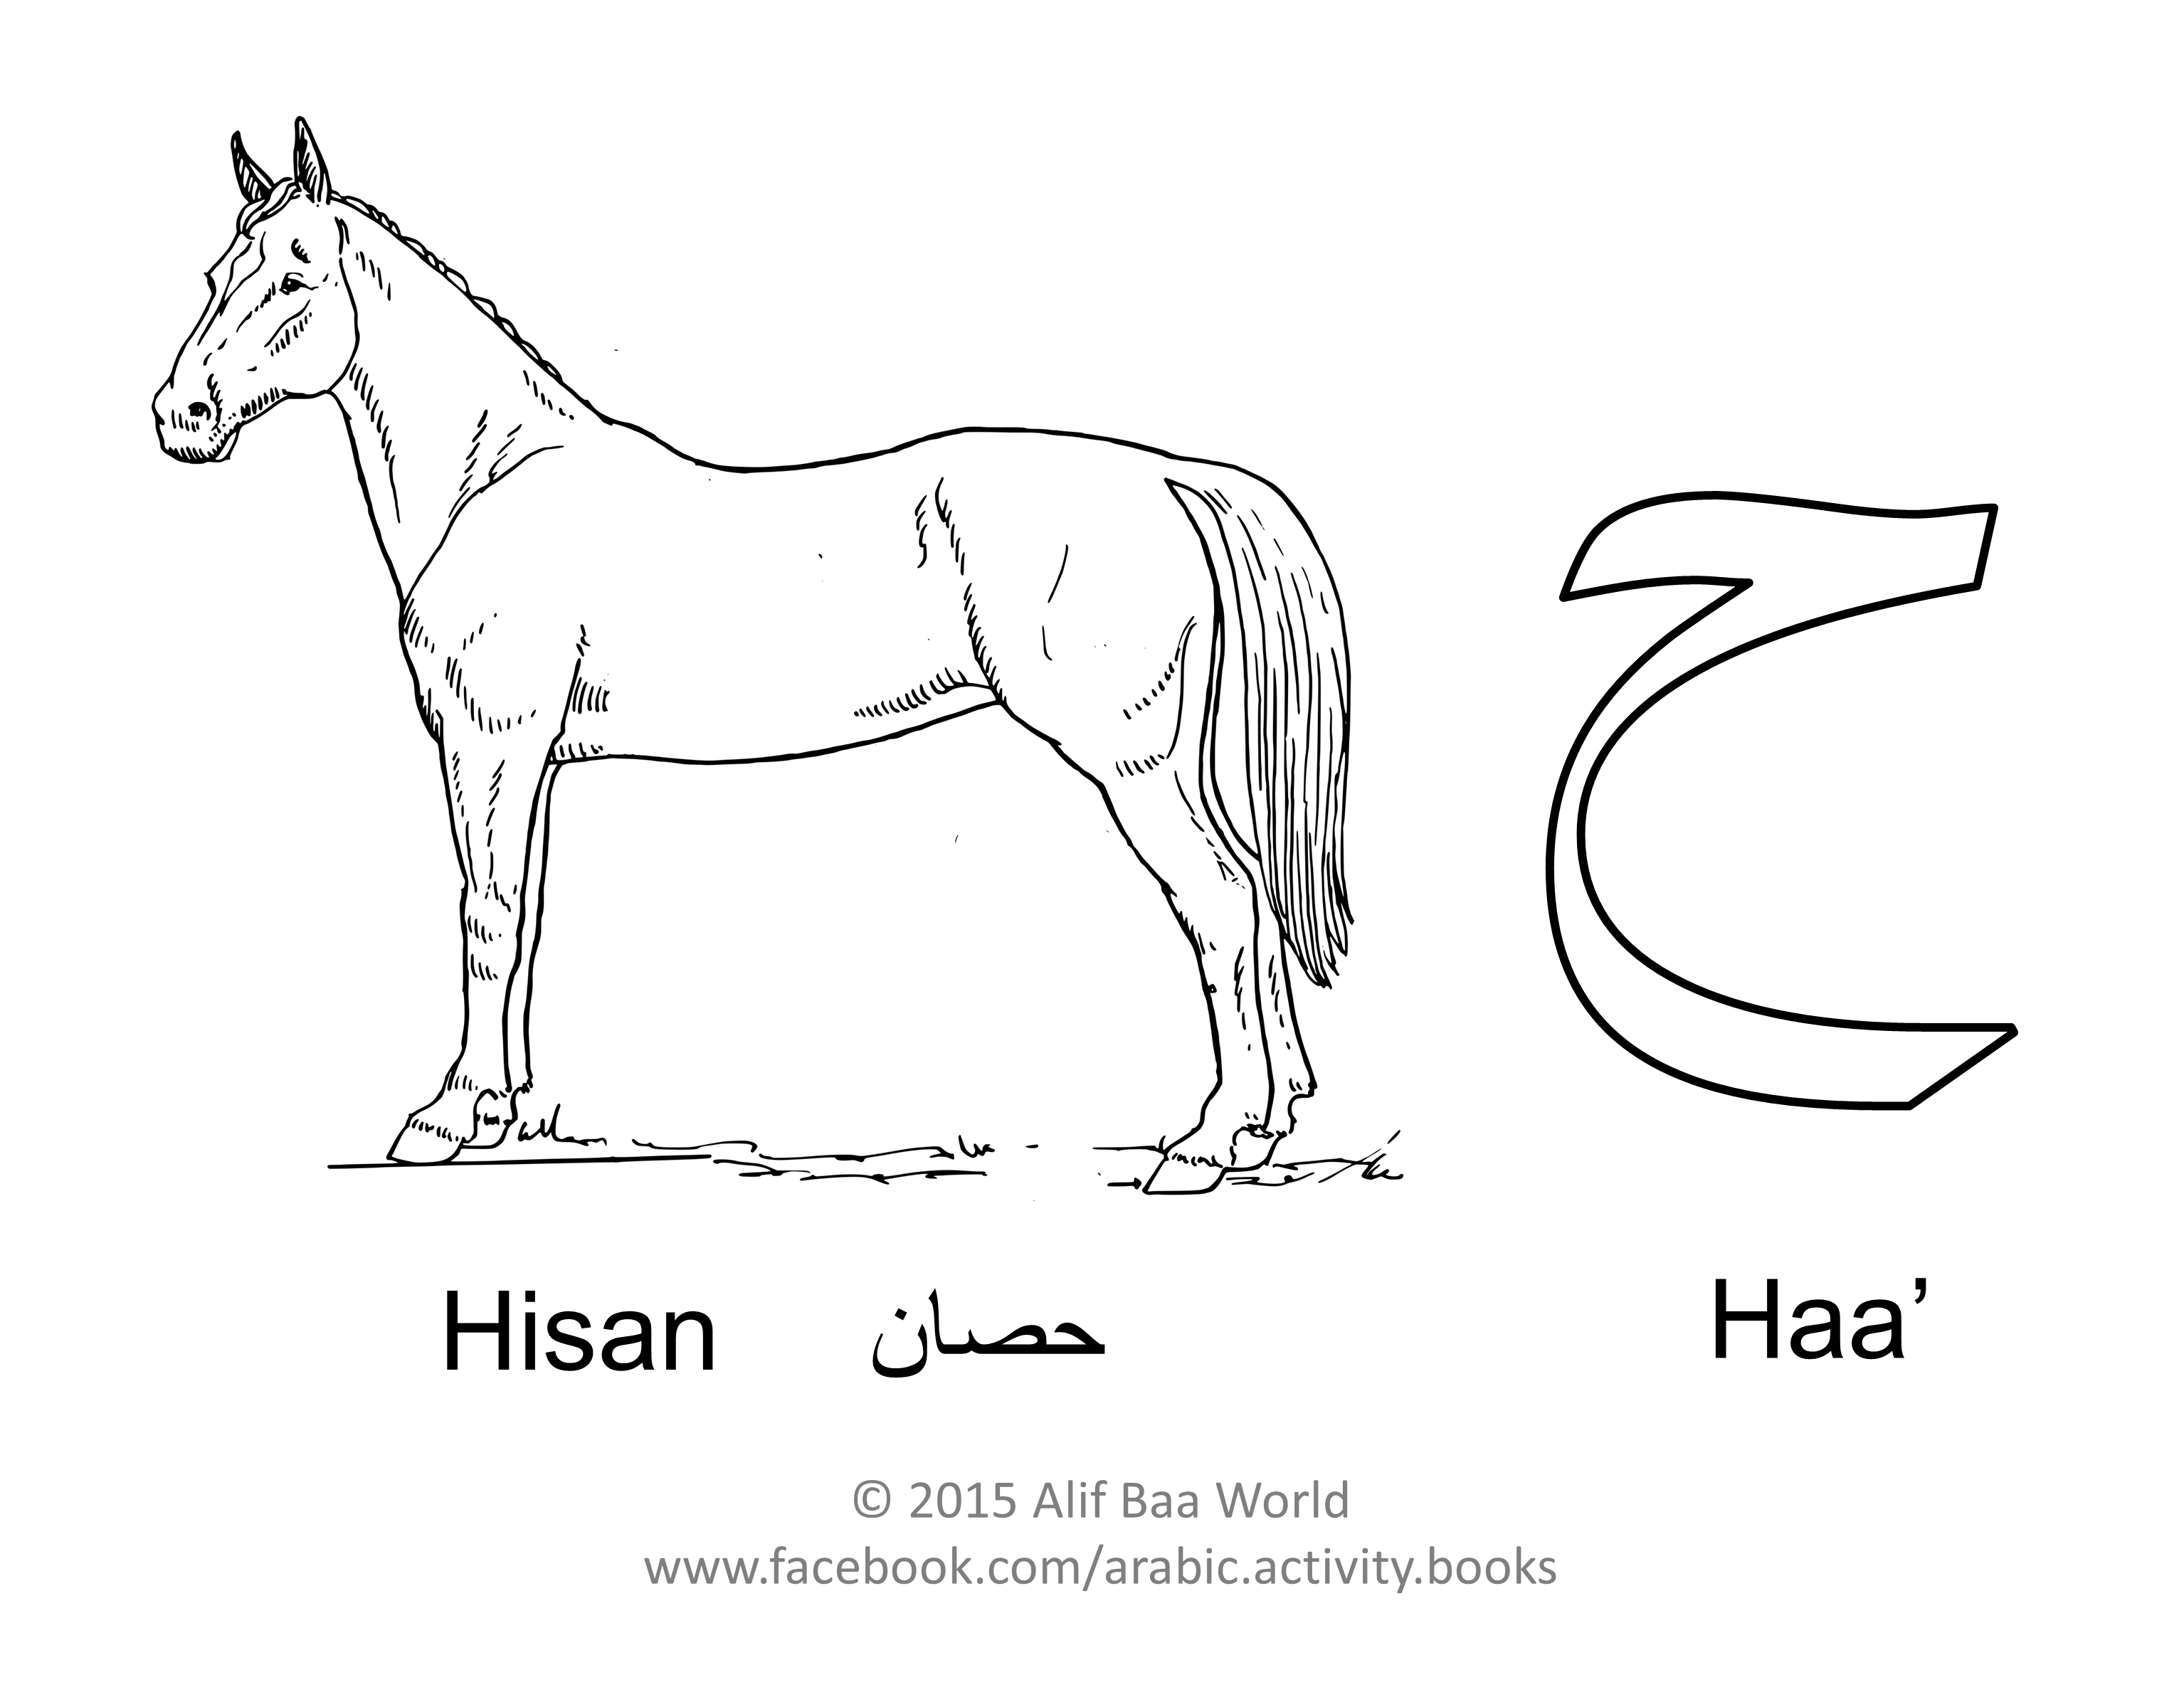 The Sixth Letter Of The Arabic Alphabet Is ح Name Haa Sound H For حصان Pronounced His Alphabet Coloring Pages Arabic Alphabet Learn Arabic Alphabet